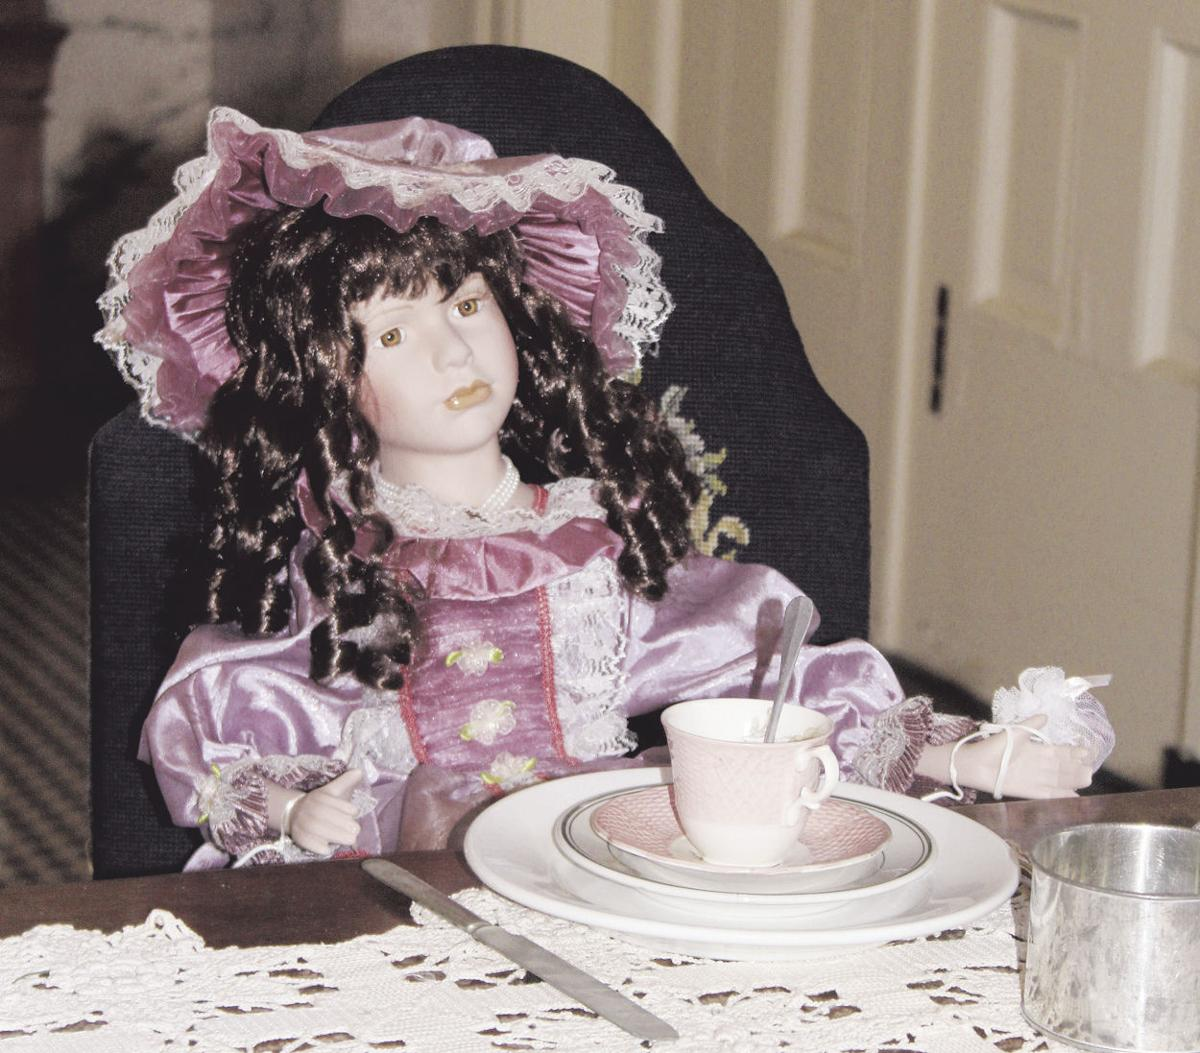 Porcelain doll collection featured at museum  News